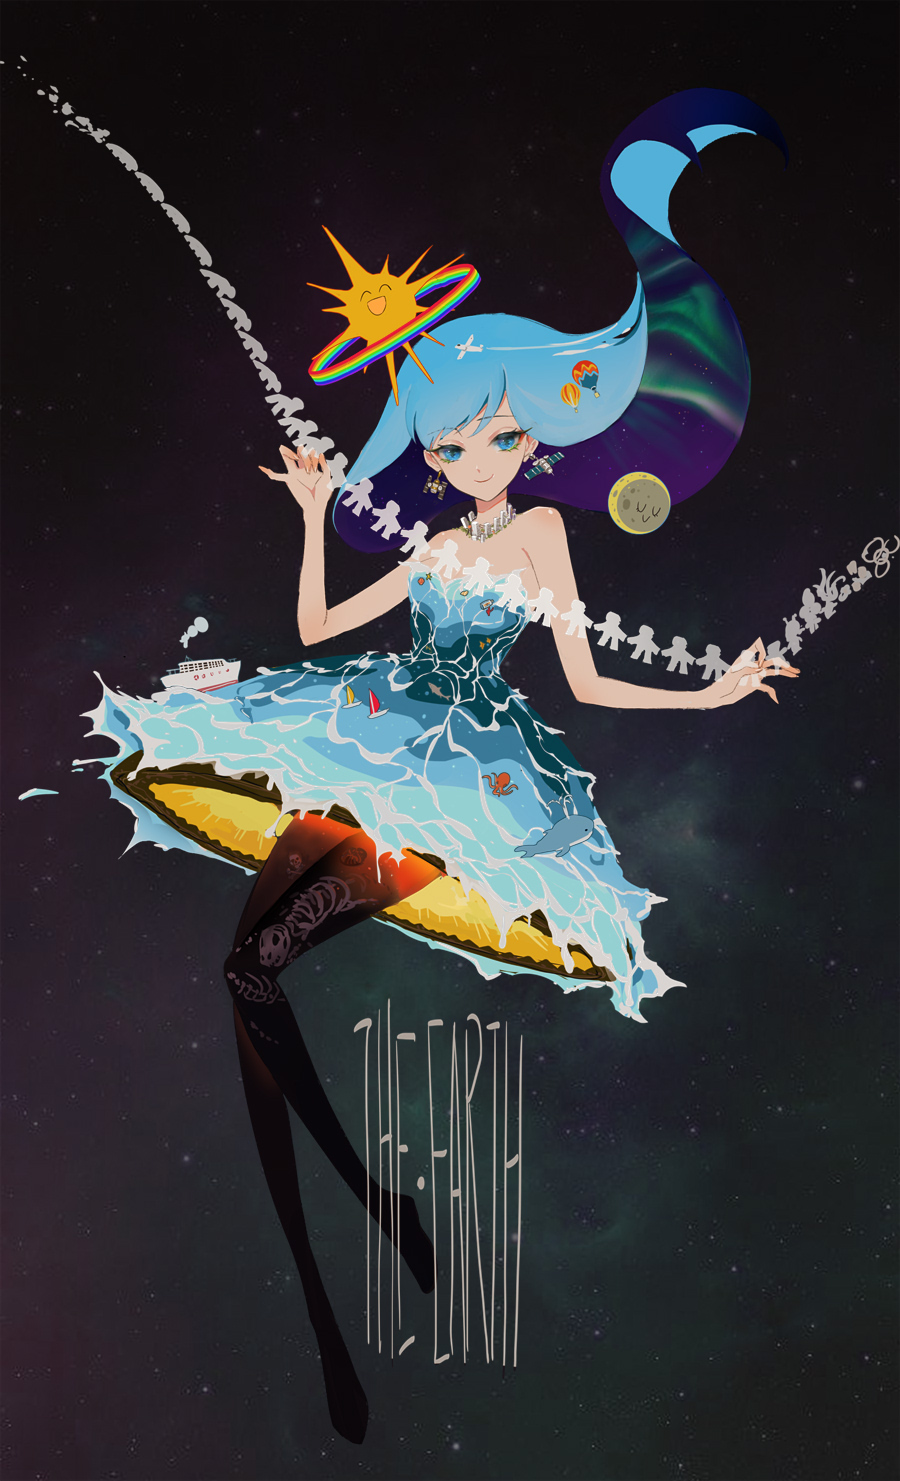 1girl aircraft airplane black_legwear blue_eyes blue_hair bone dress earrings english_text evolution floating_hair highres hot_air_balloon jewelry liusang multicolored multicolored_clothes multicolored_hair octopus original paper_cutout personification rainbow satellite ship smile space sun watercraft whale yacht